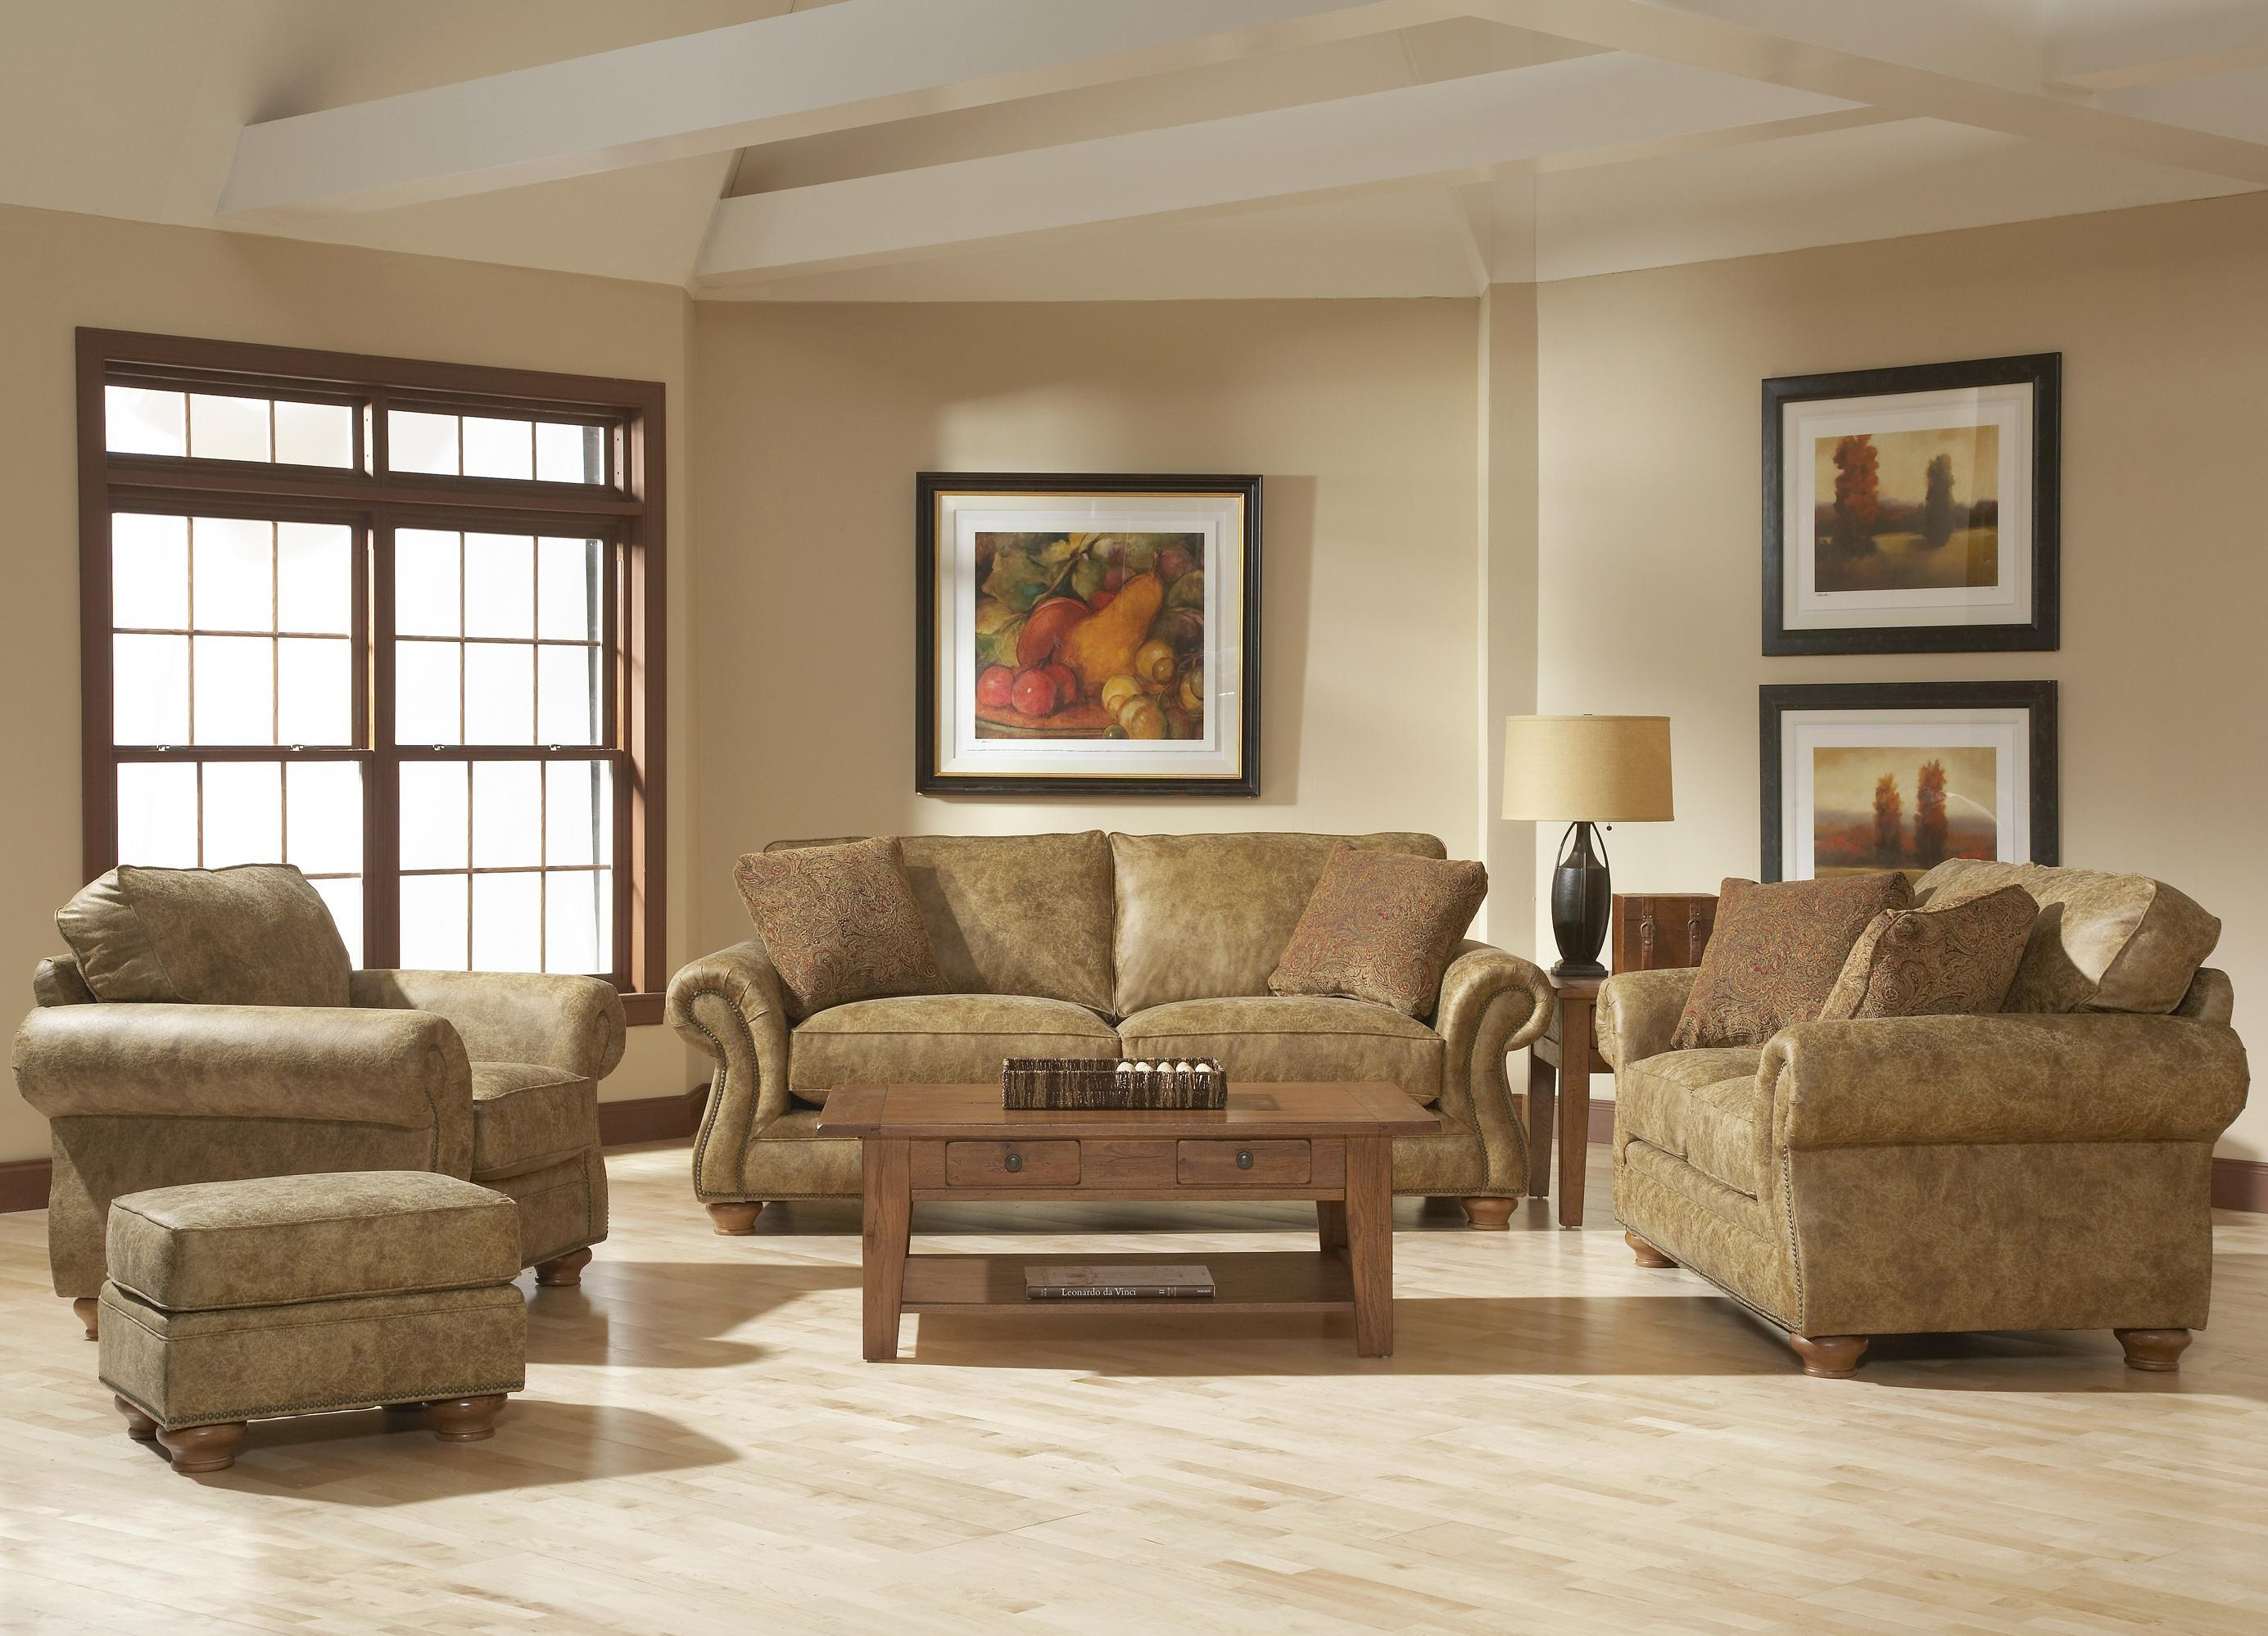 Broyhill Furniture Laramie 3 Piece Wedge Sectional Sofa – Wayside Throughout Broyhill Reclining Sofas (Image 3 of 20)